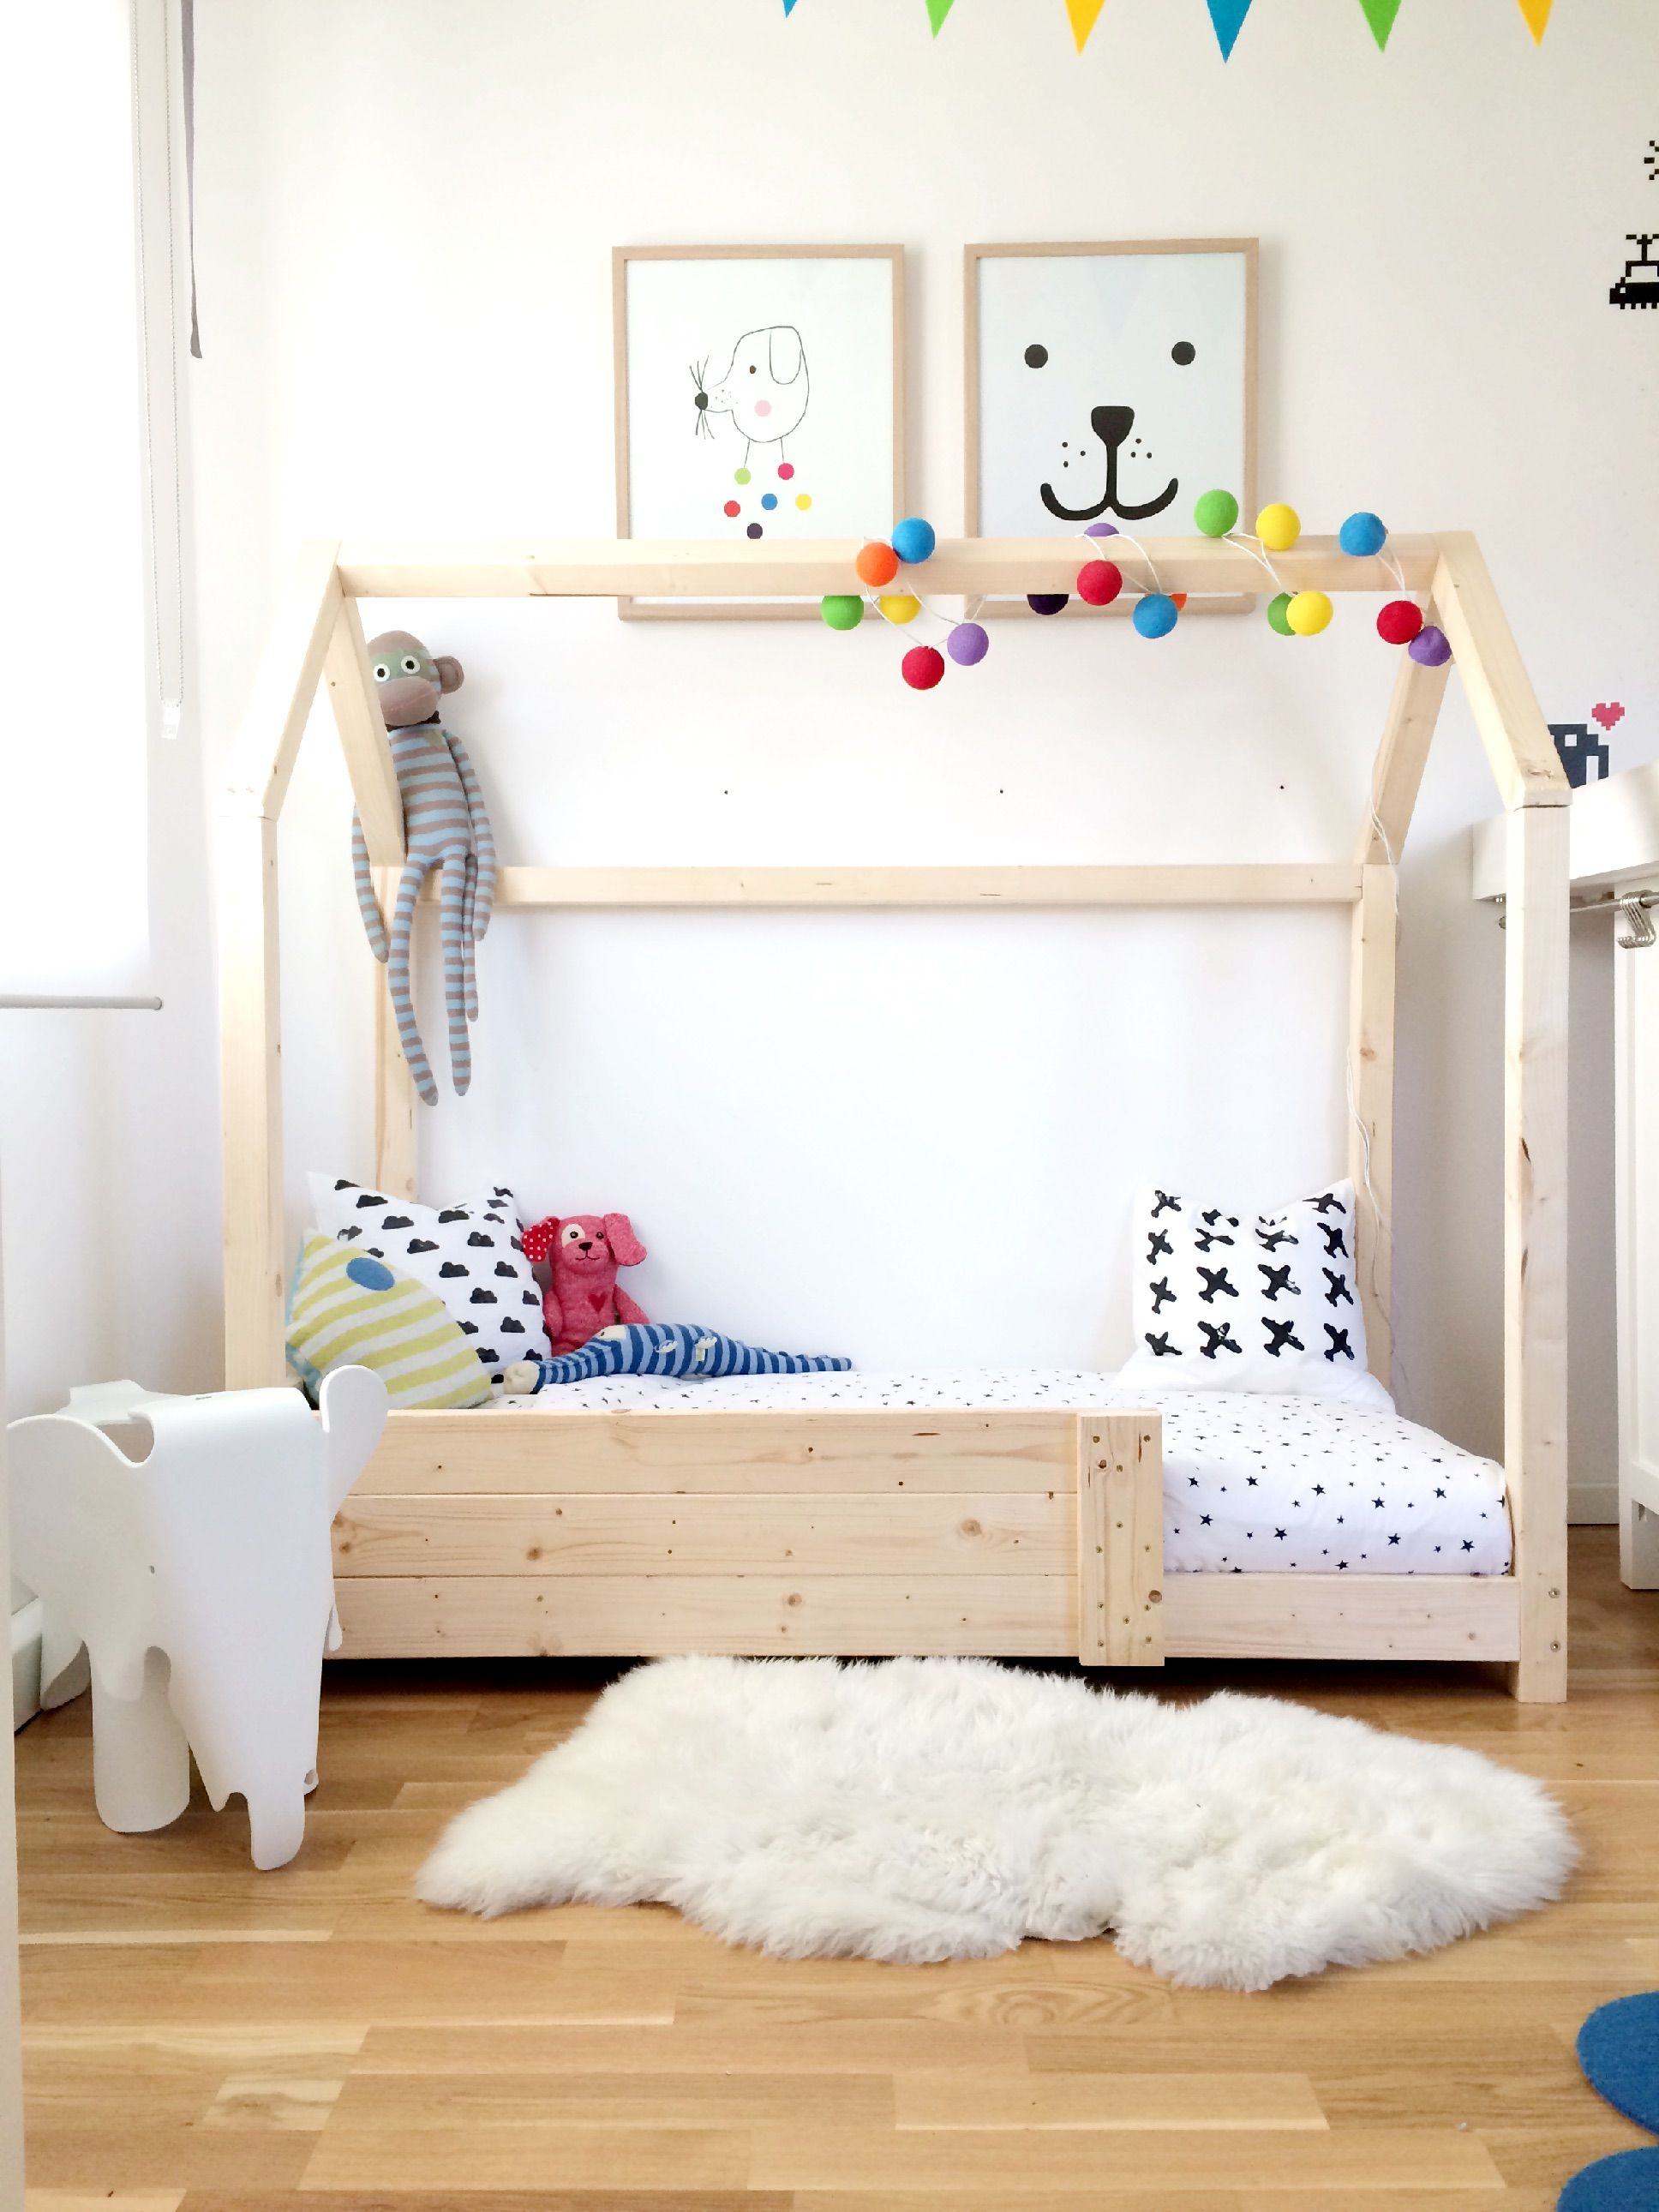 diy h uschenbett kids and parenting pinterest kinderzimmer kinderzimmer ideen und bett. Black Bedroom Furniture Sets. Home Design Ideas